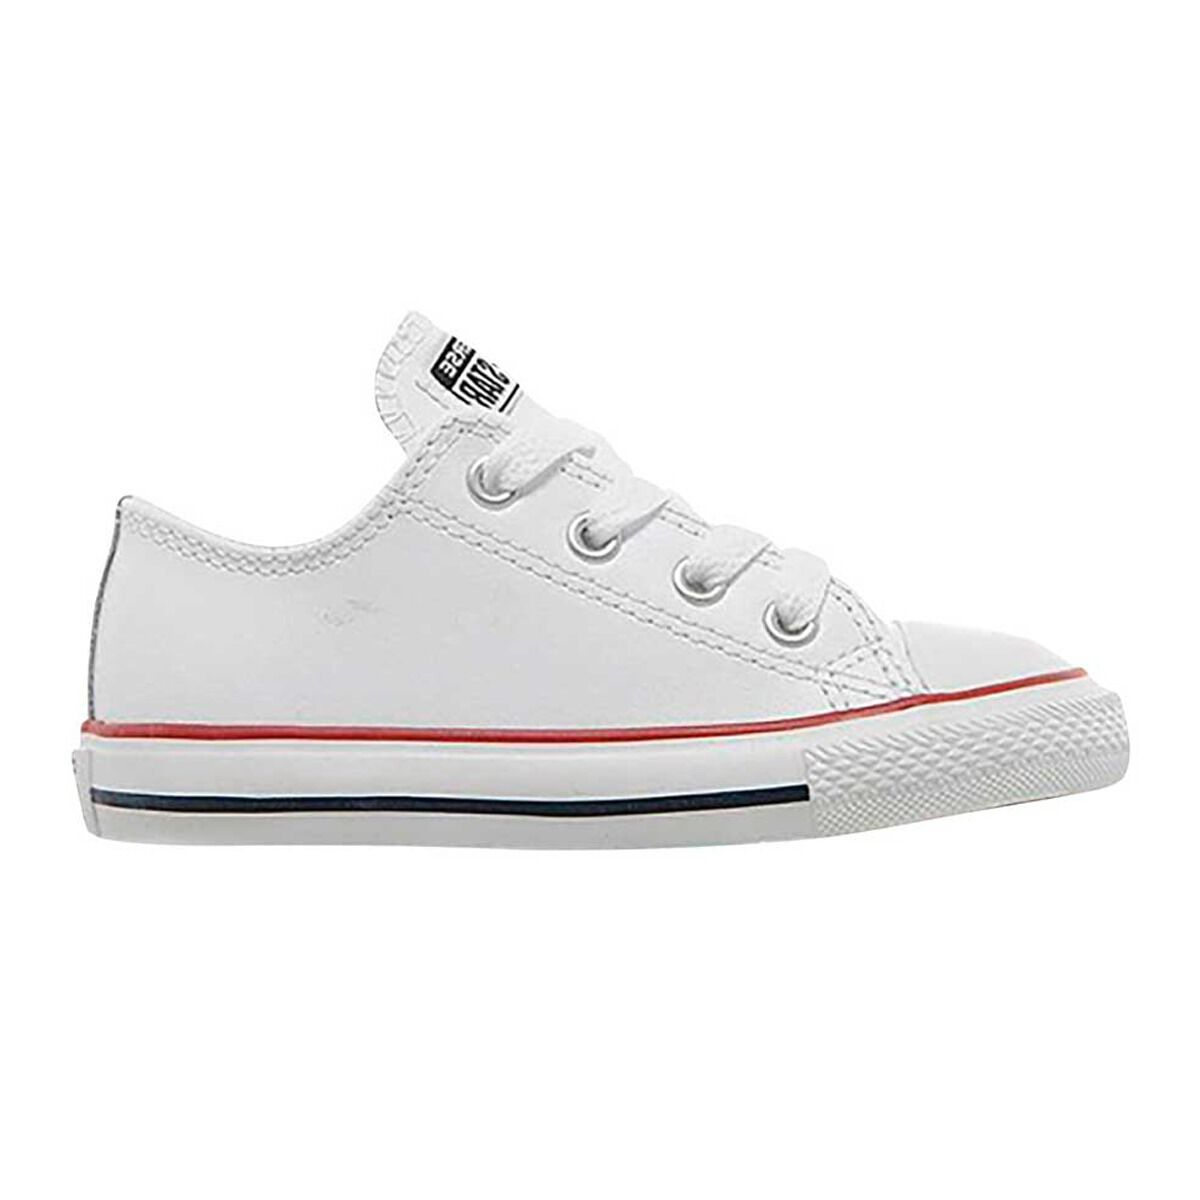 Converse Chuck Taylor All Star Low Top Leather Toddlers Shoes White US 7